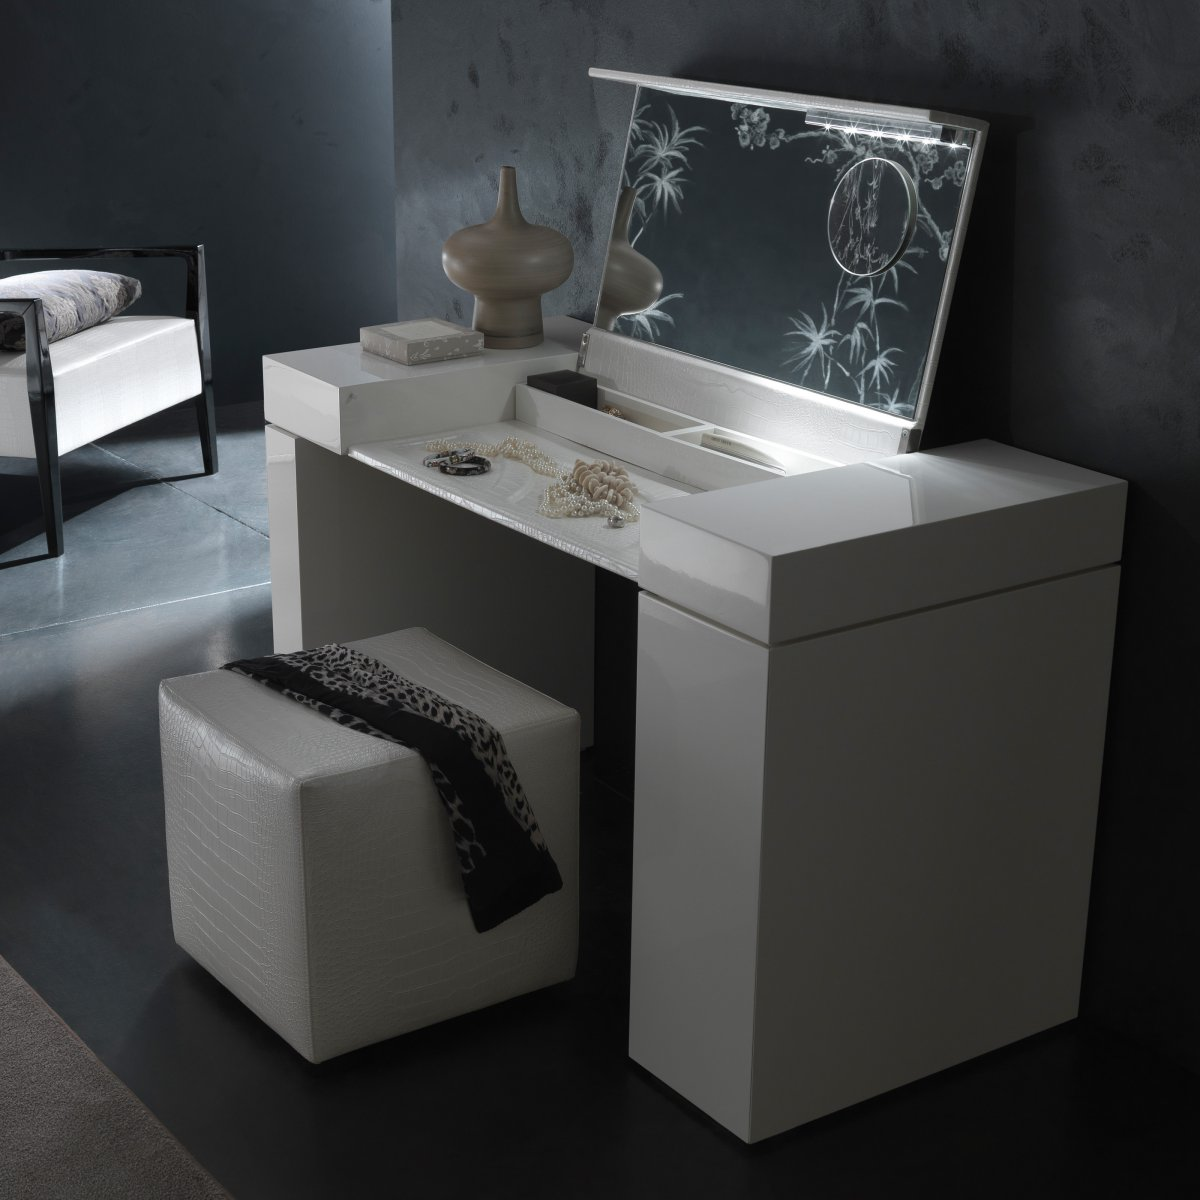 Fabulous hayworth vanity mirrored vanity and ikea vanity also ikea rug hayworth rug ideas